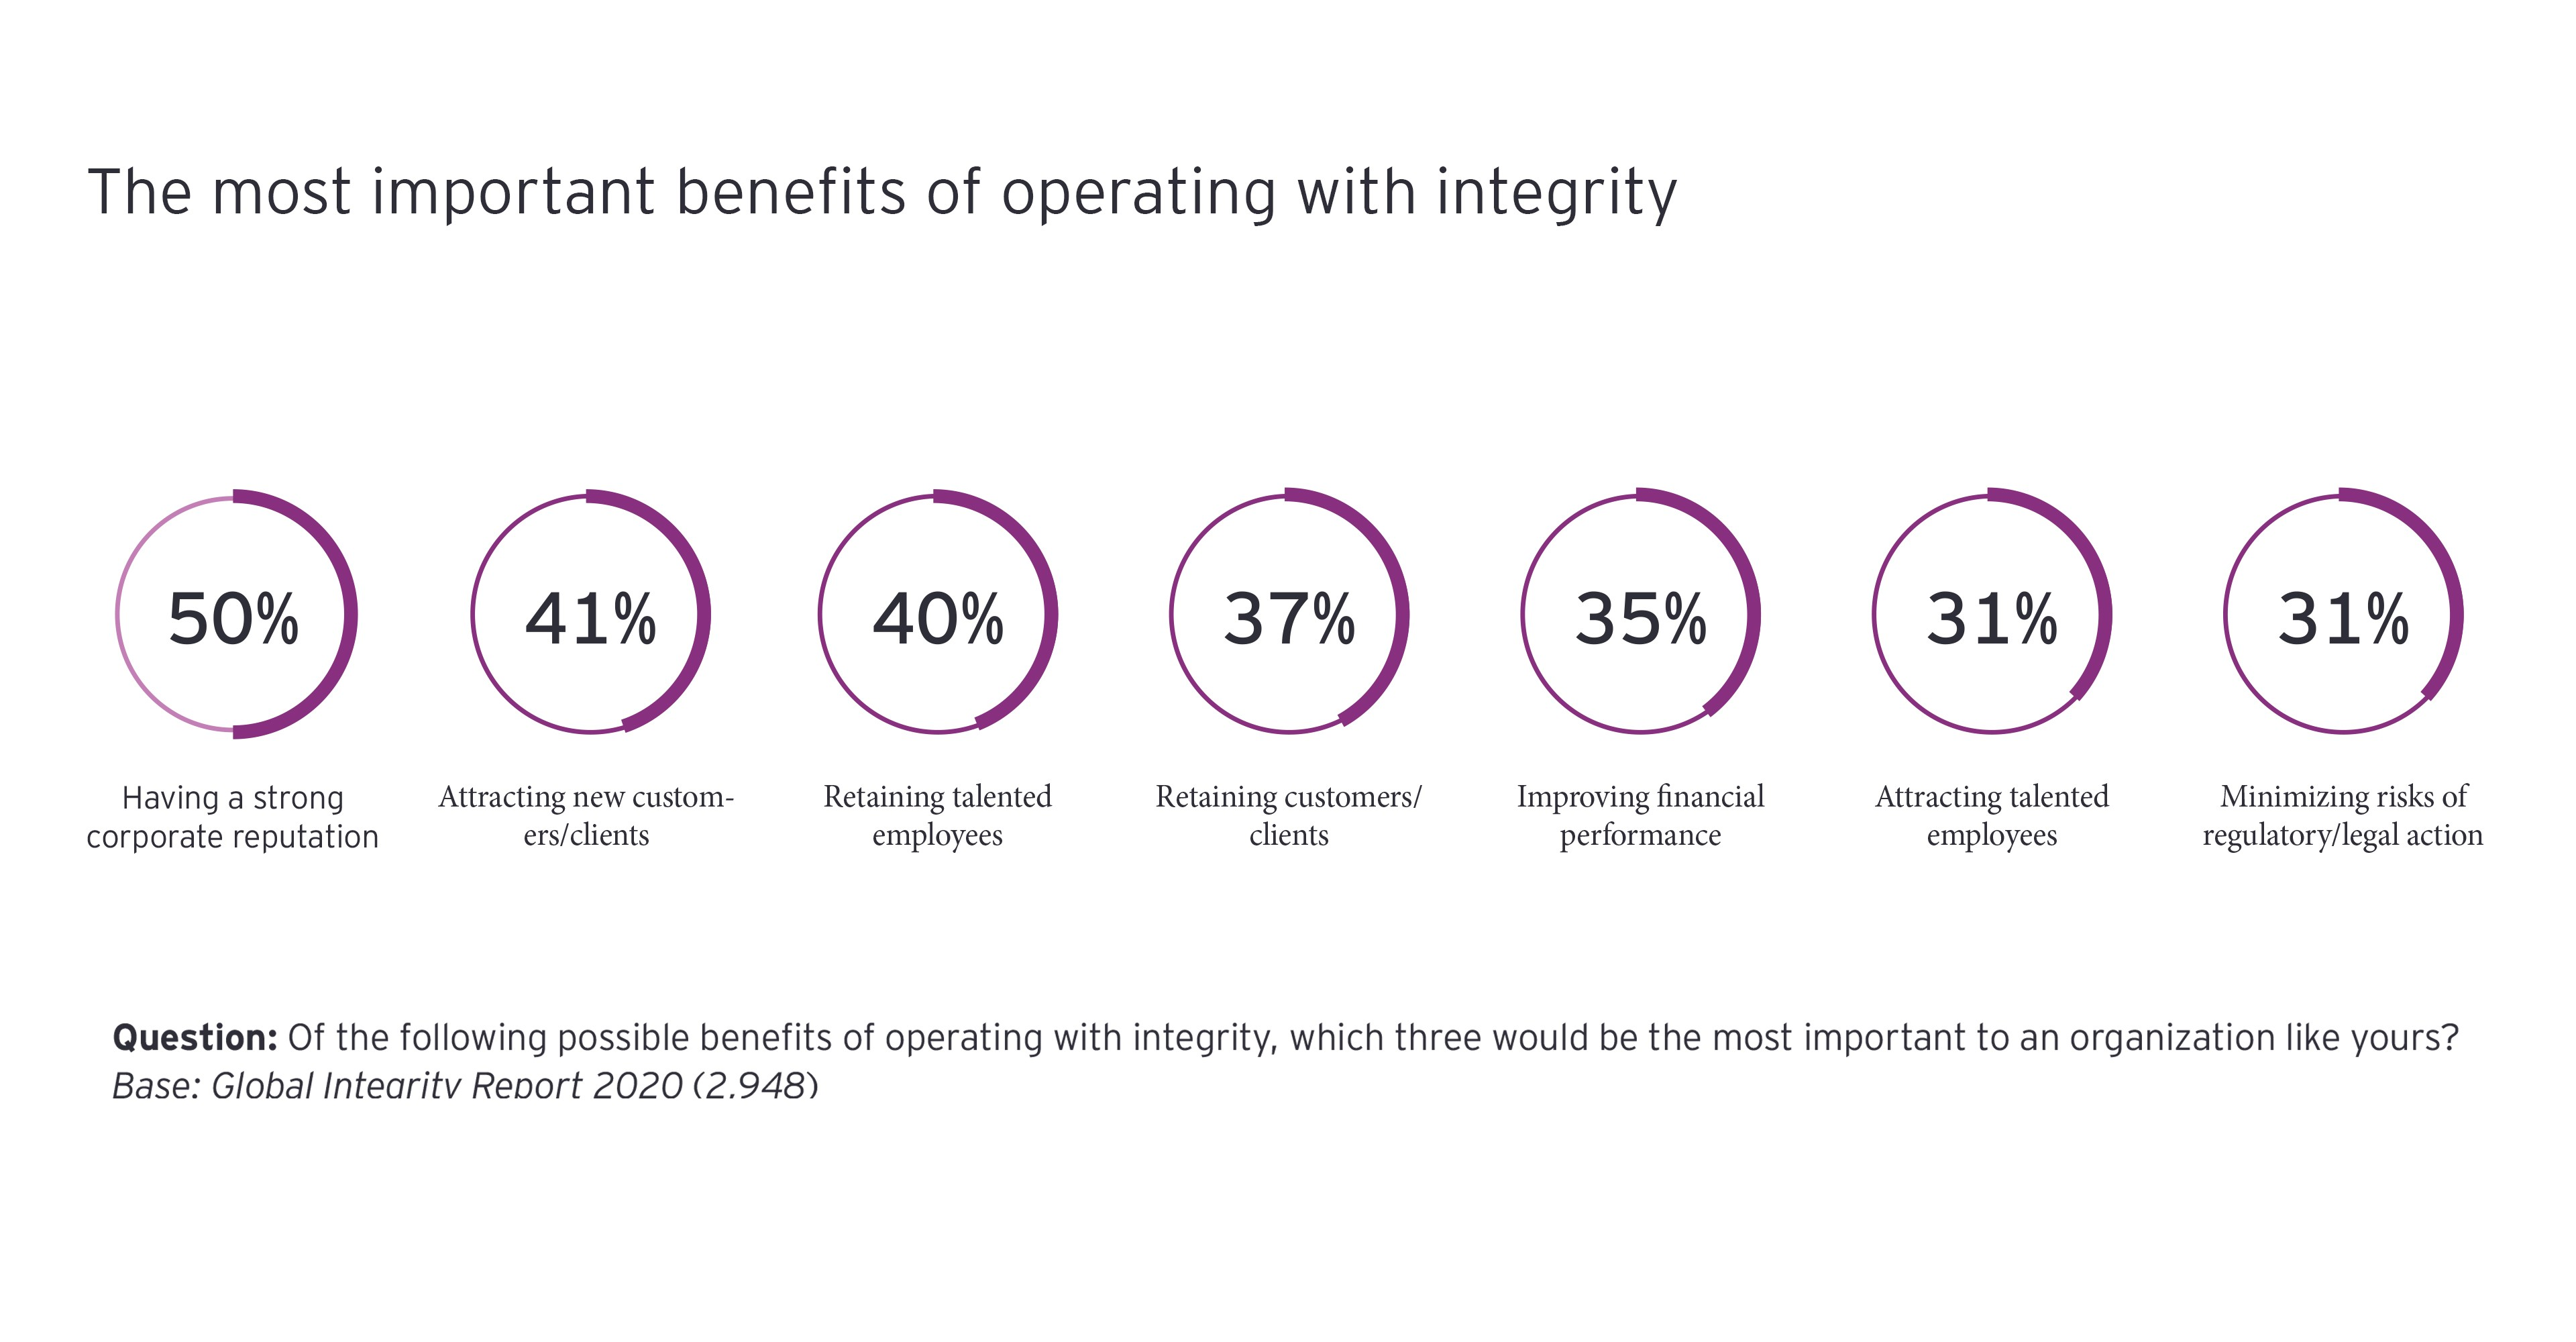 ey benefits of working with integrity.jpg.rendition.3840.2560